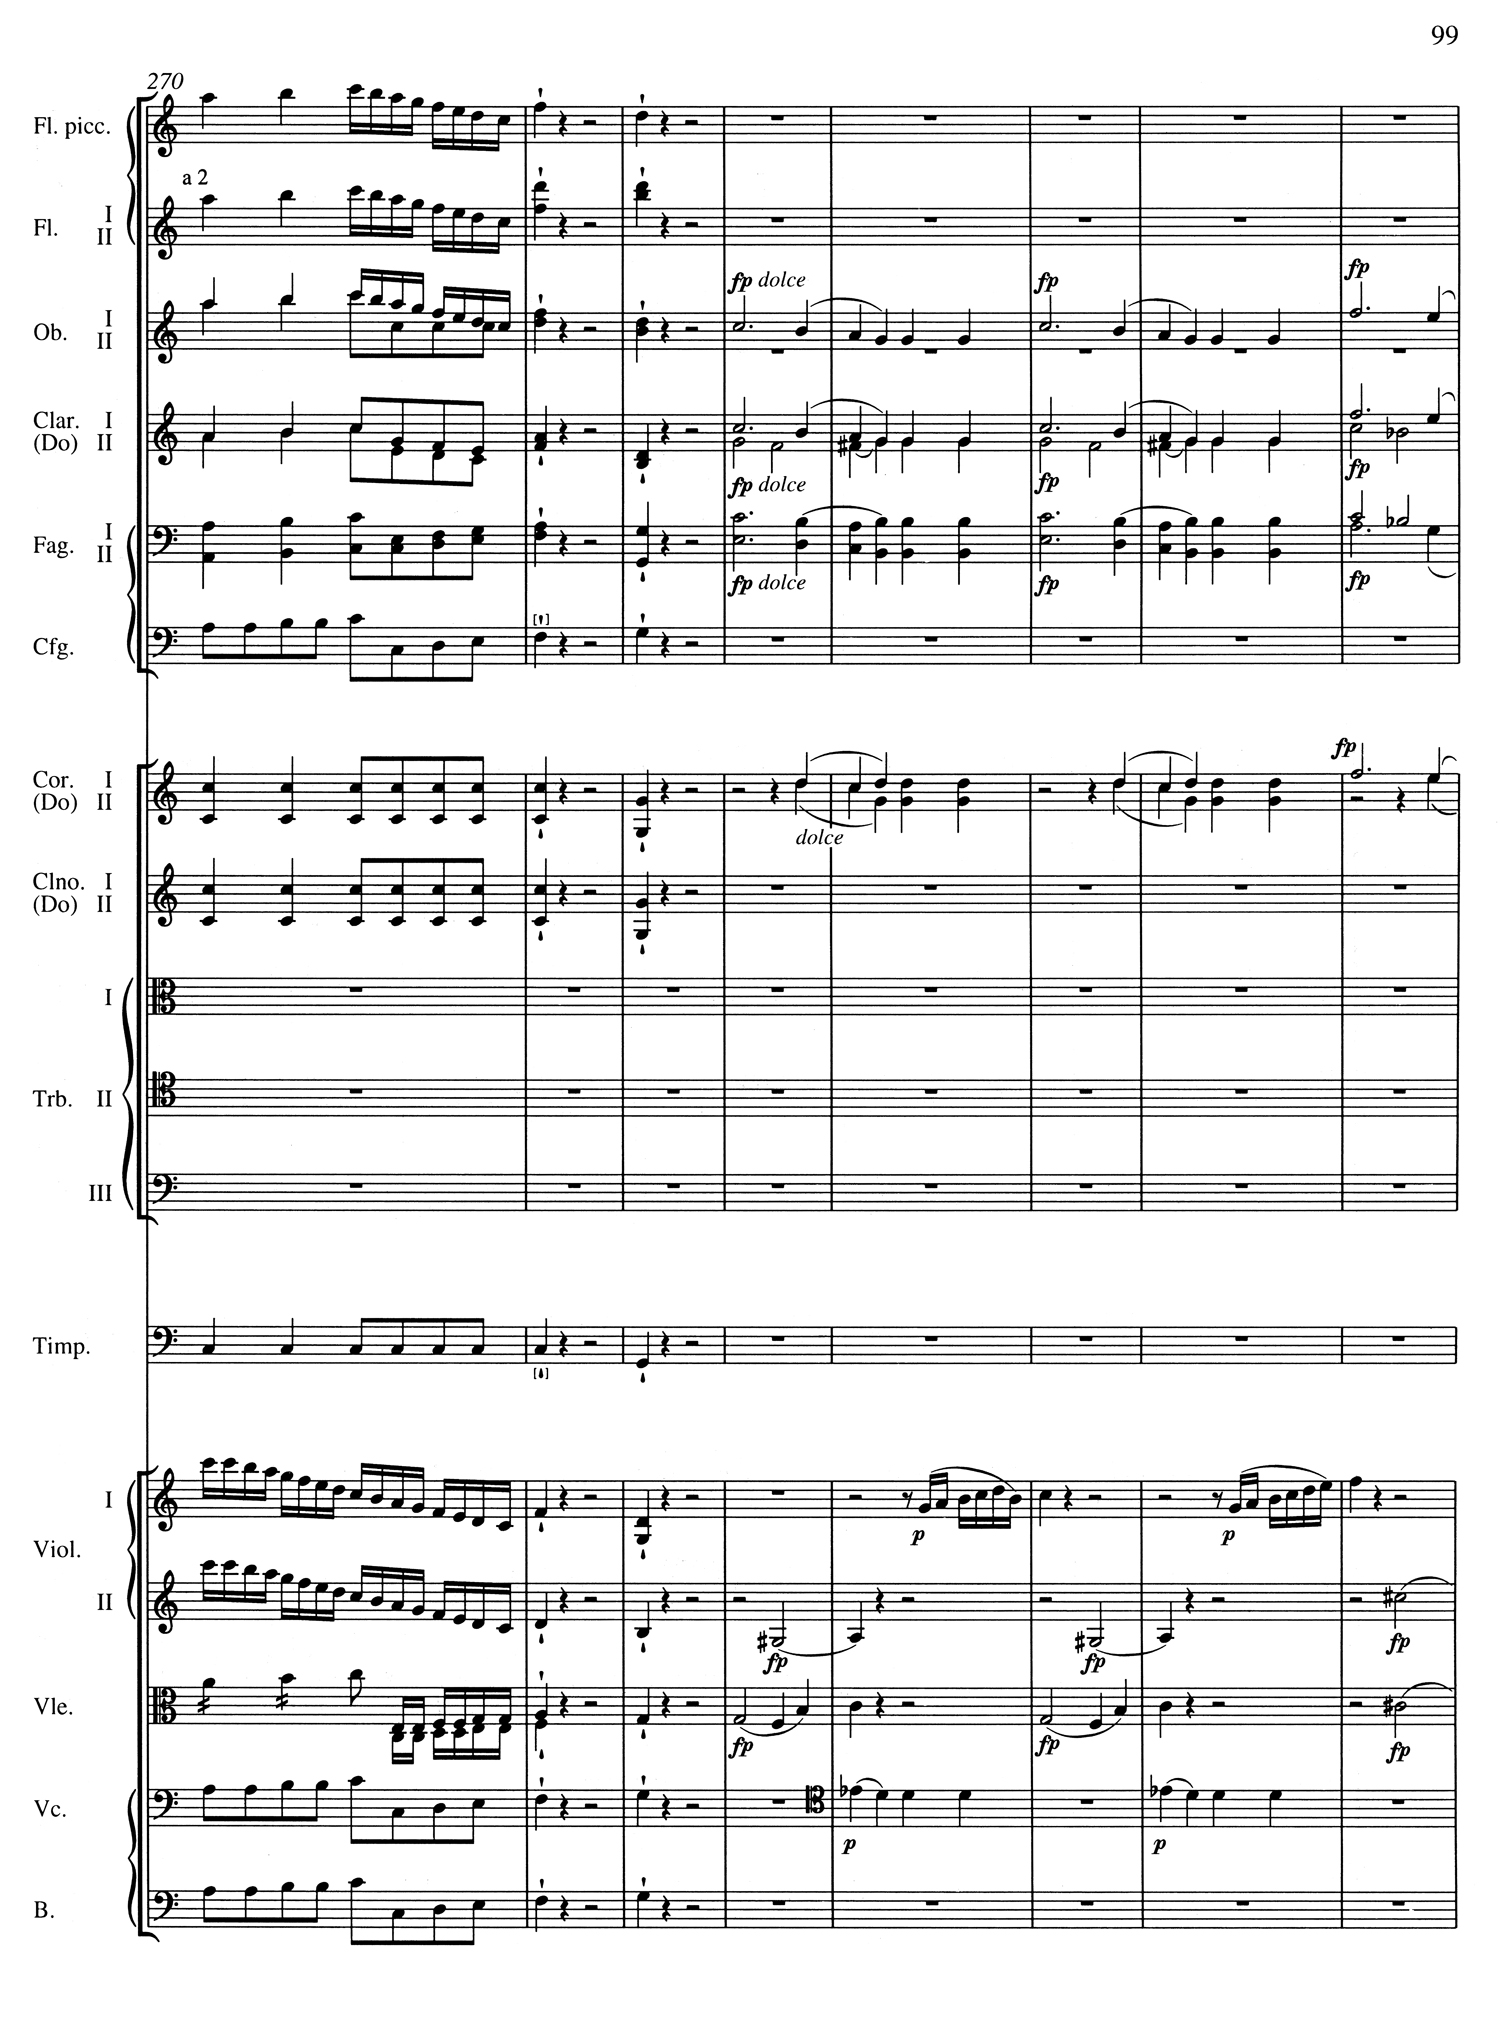 IV  Allegro - mm  374 to 436 — The Orchestral Bassoon